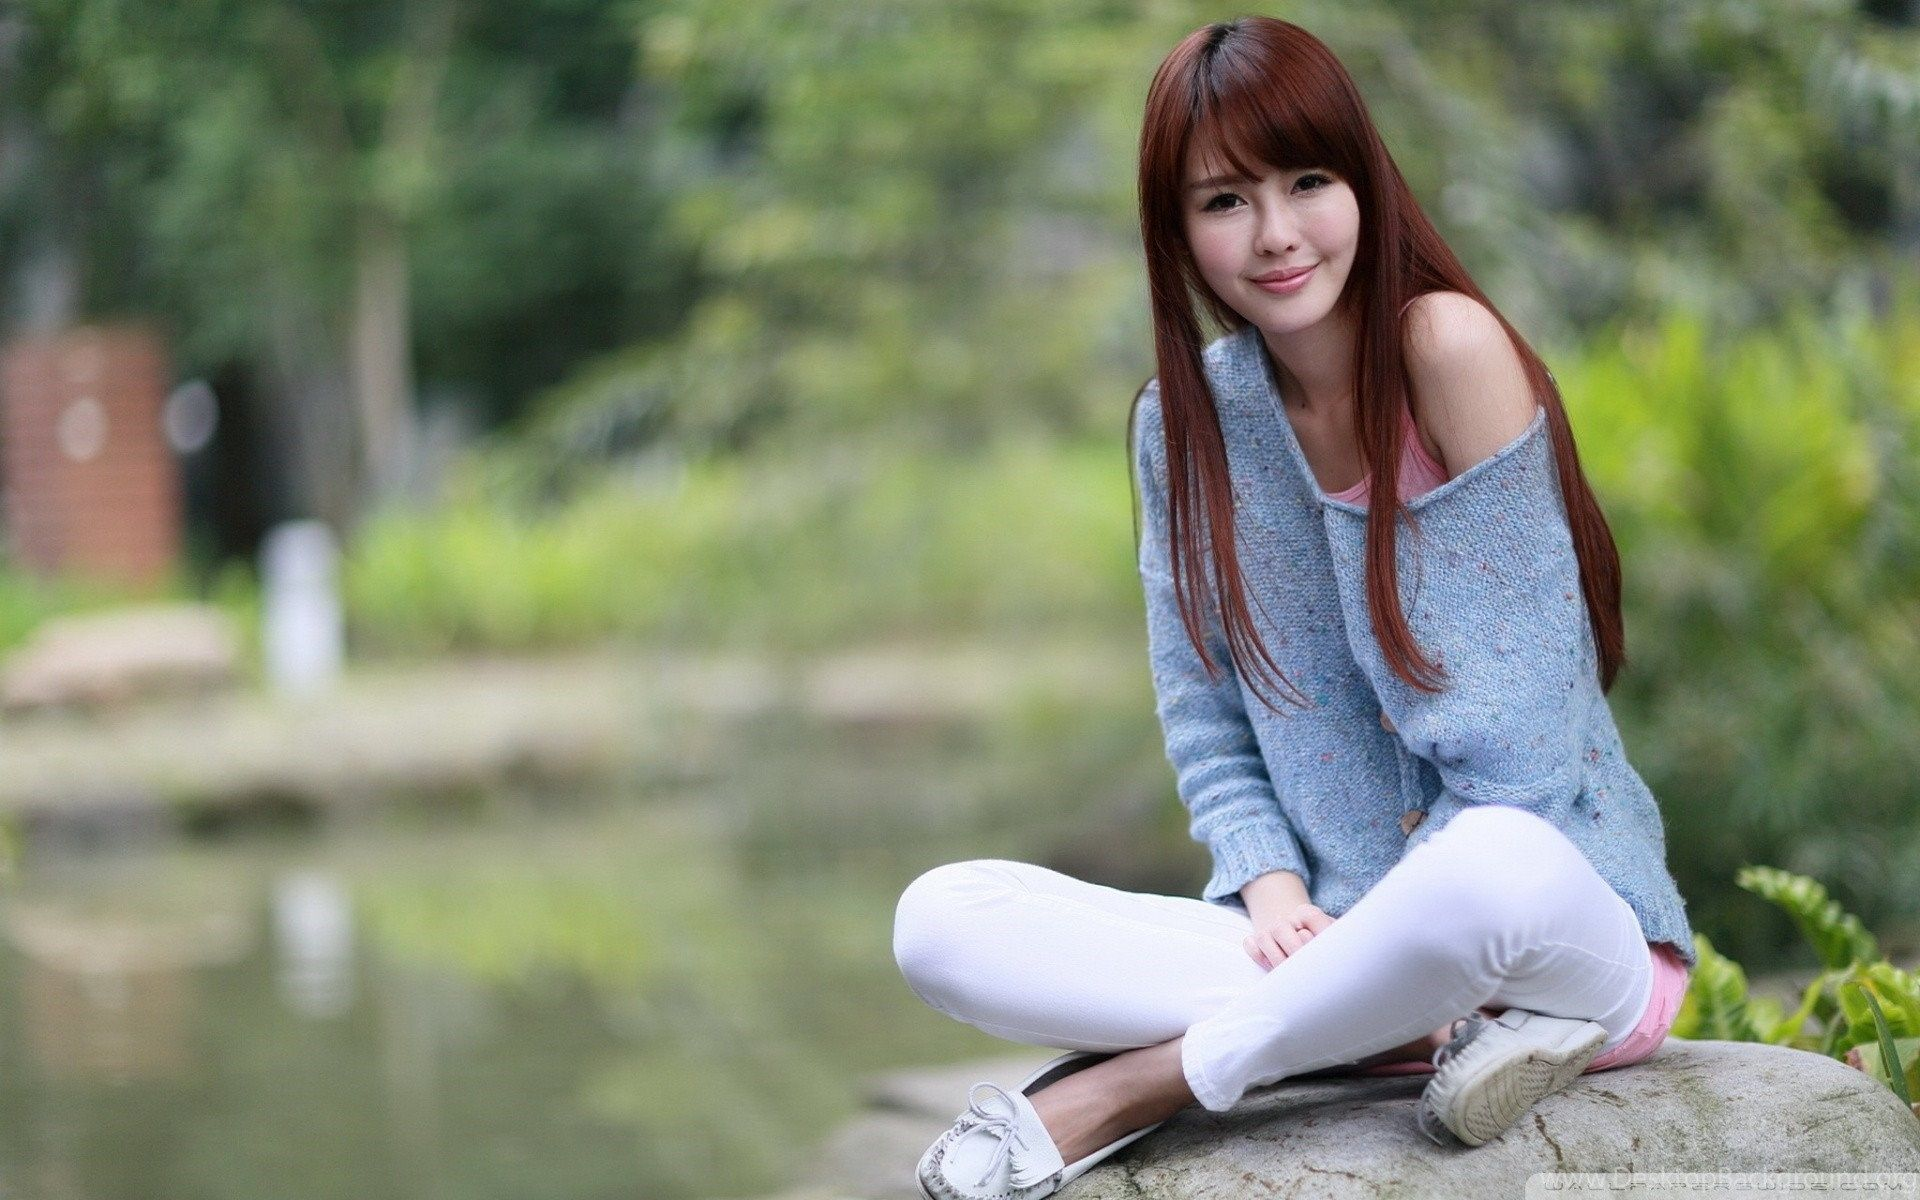 HD Cute Asian Wallpapers